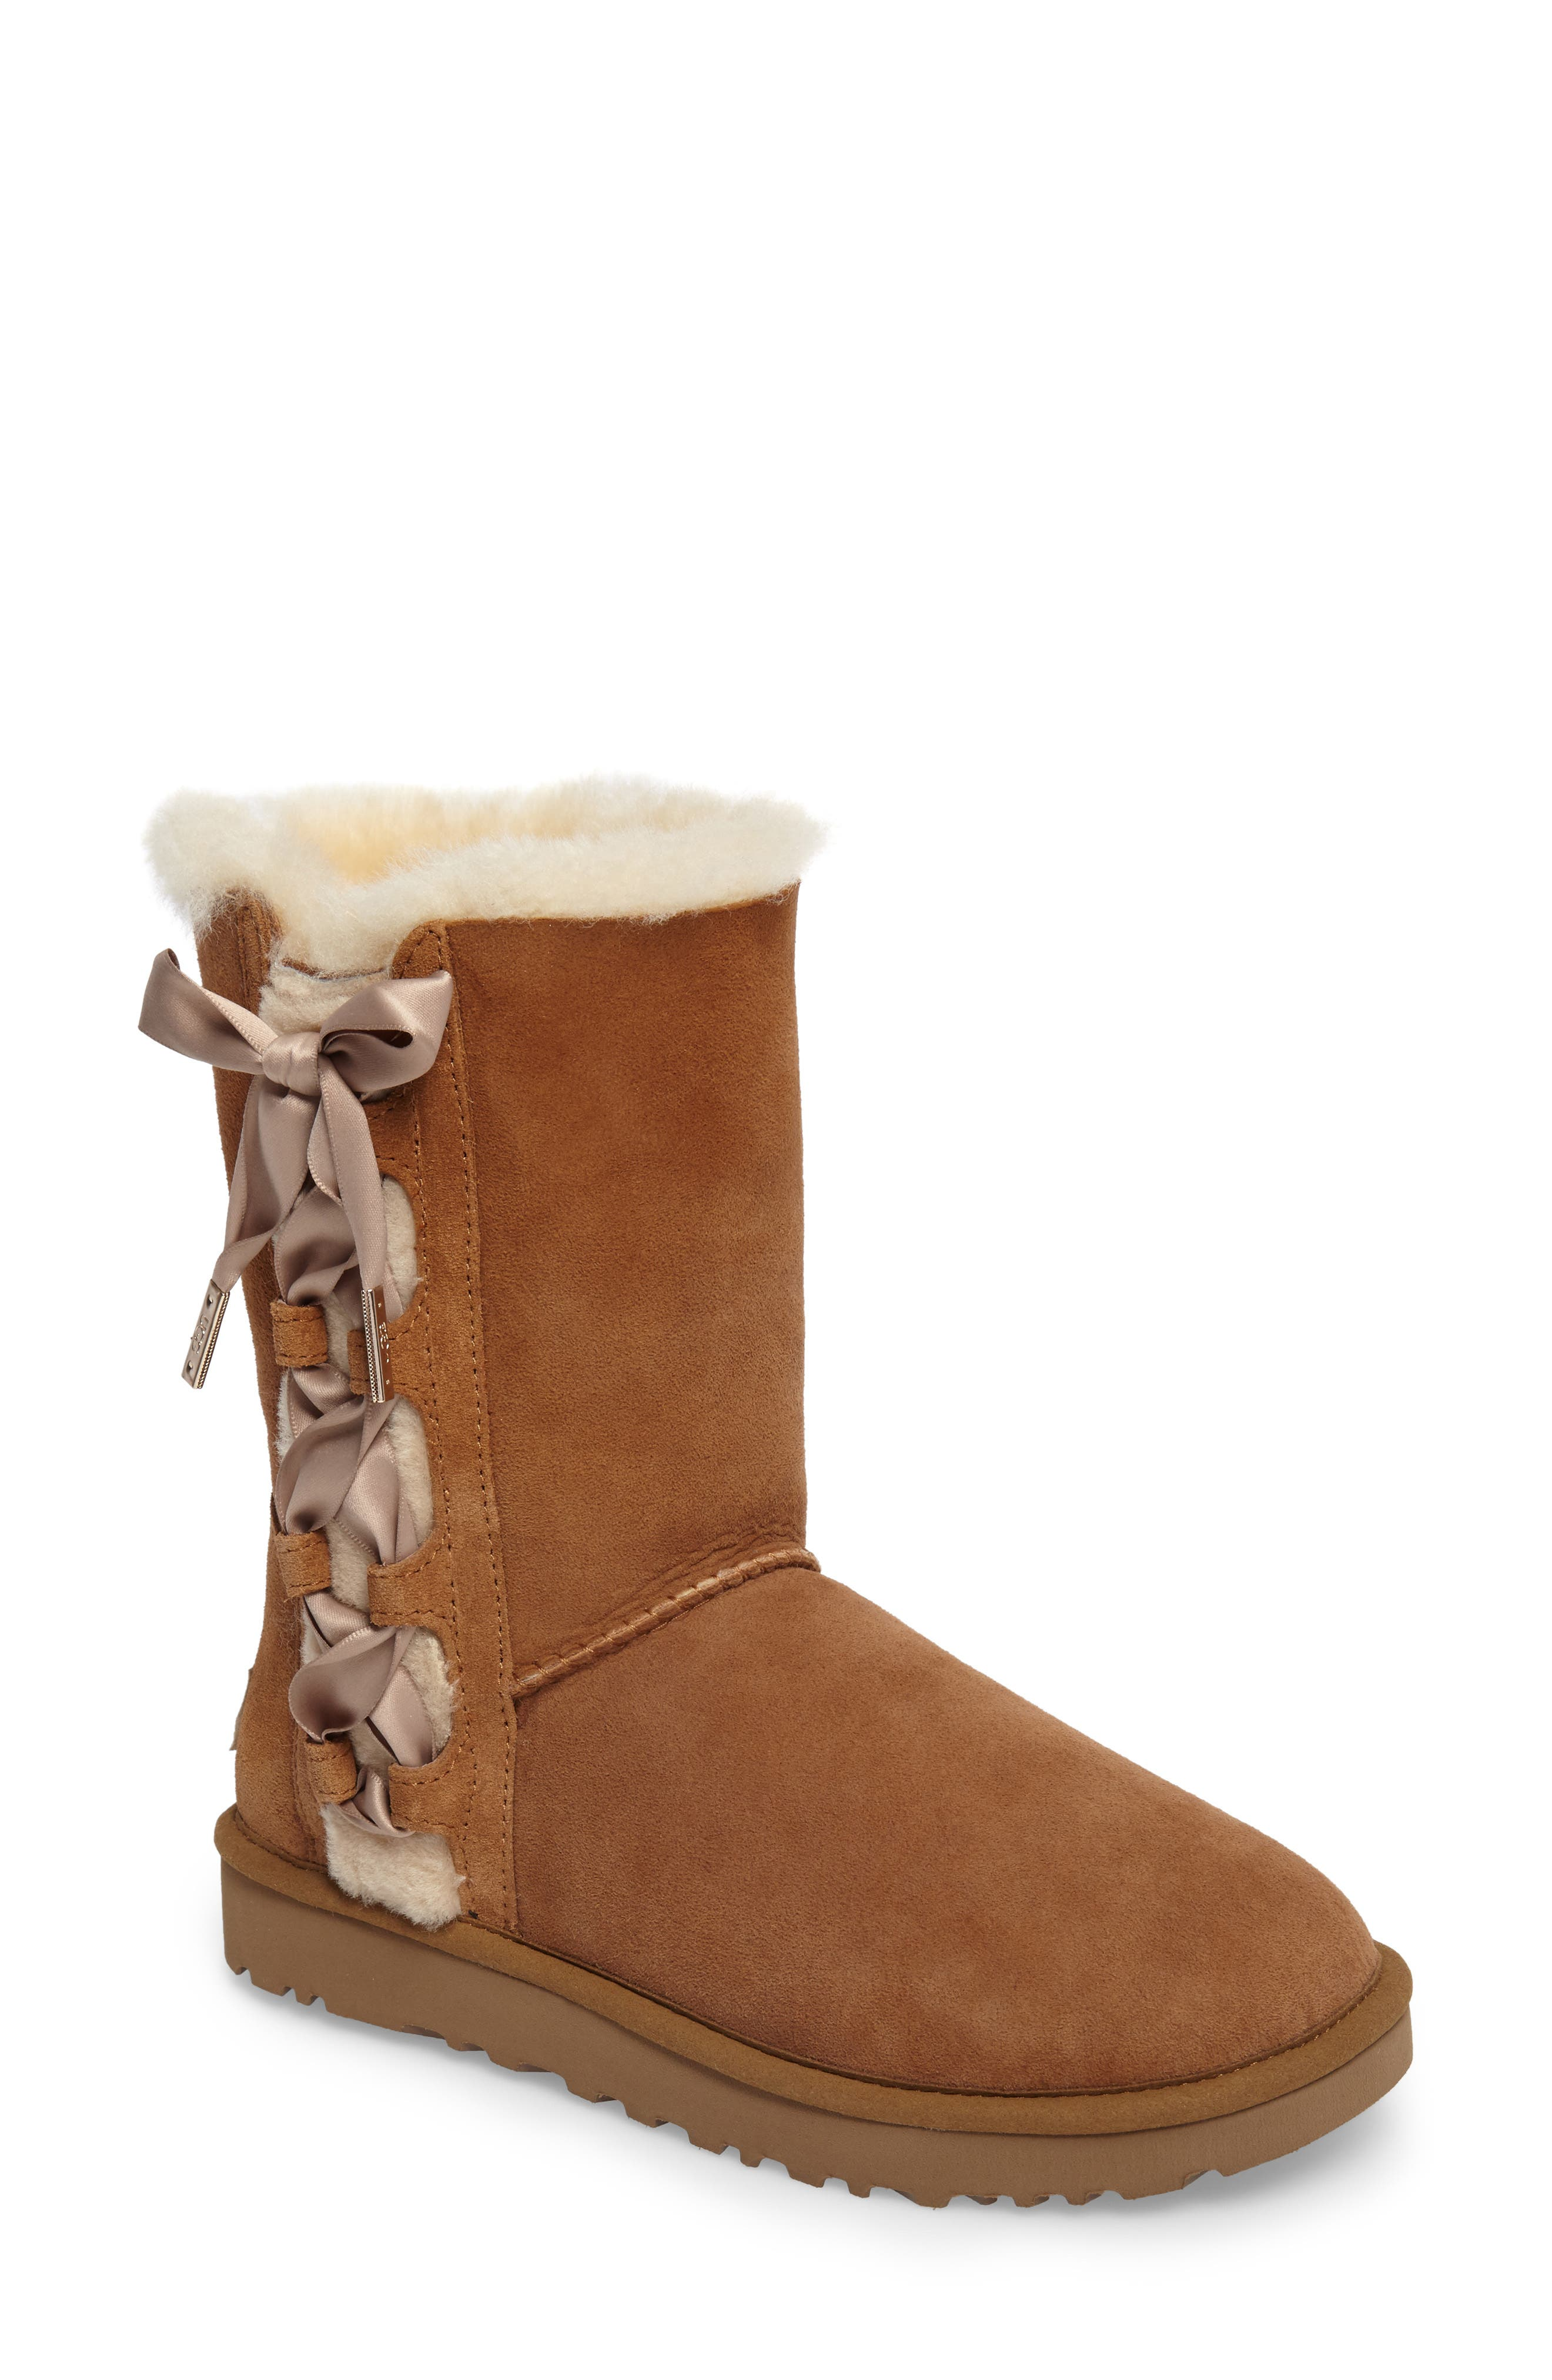 Pala Boot,                         Main,                         color, Chestnut Suede